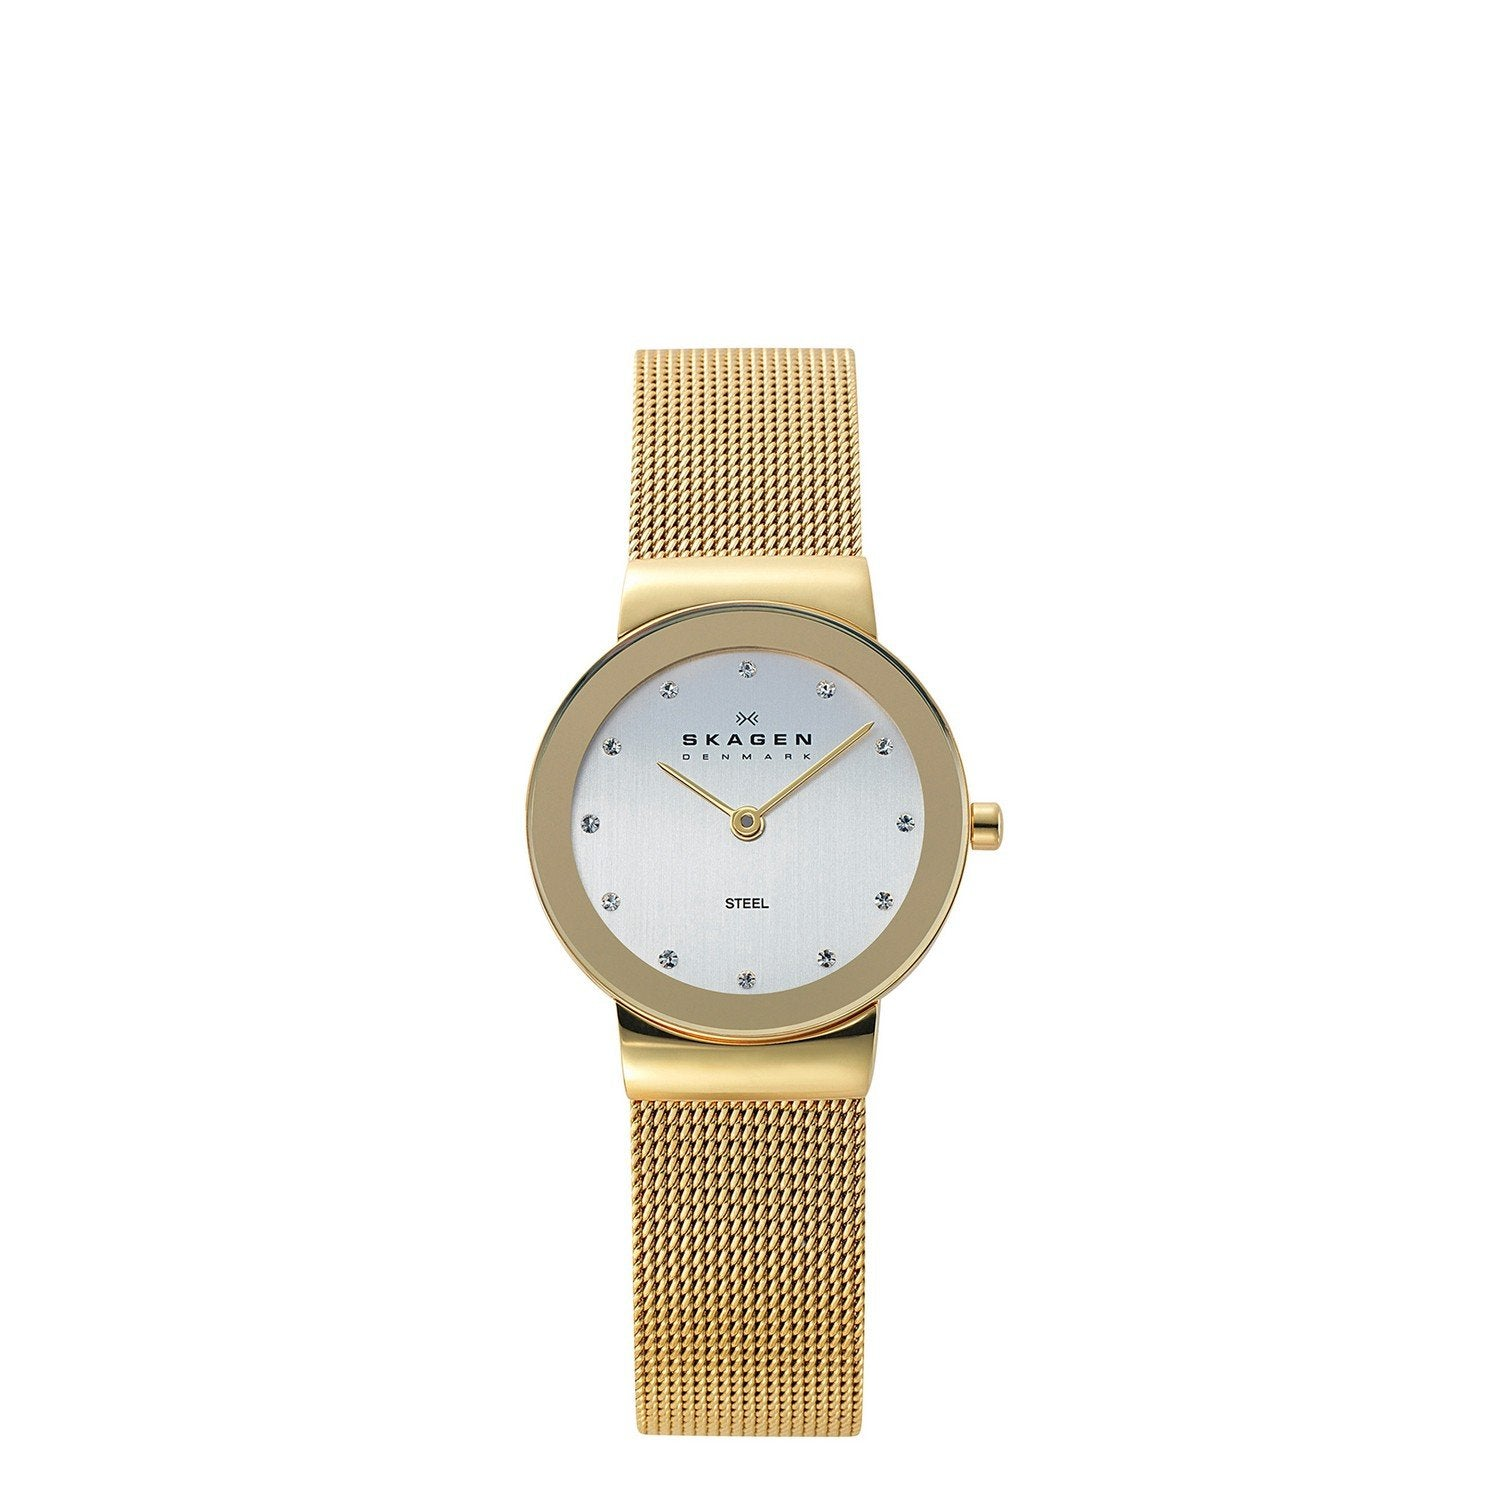 Skagen Women's 358SGGD White Label Analog Quartz Gold Watch - yrGear